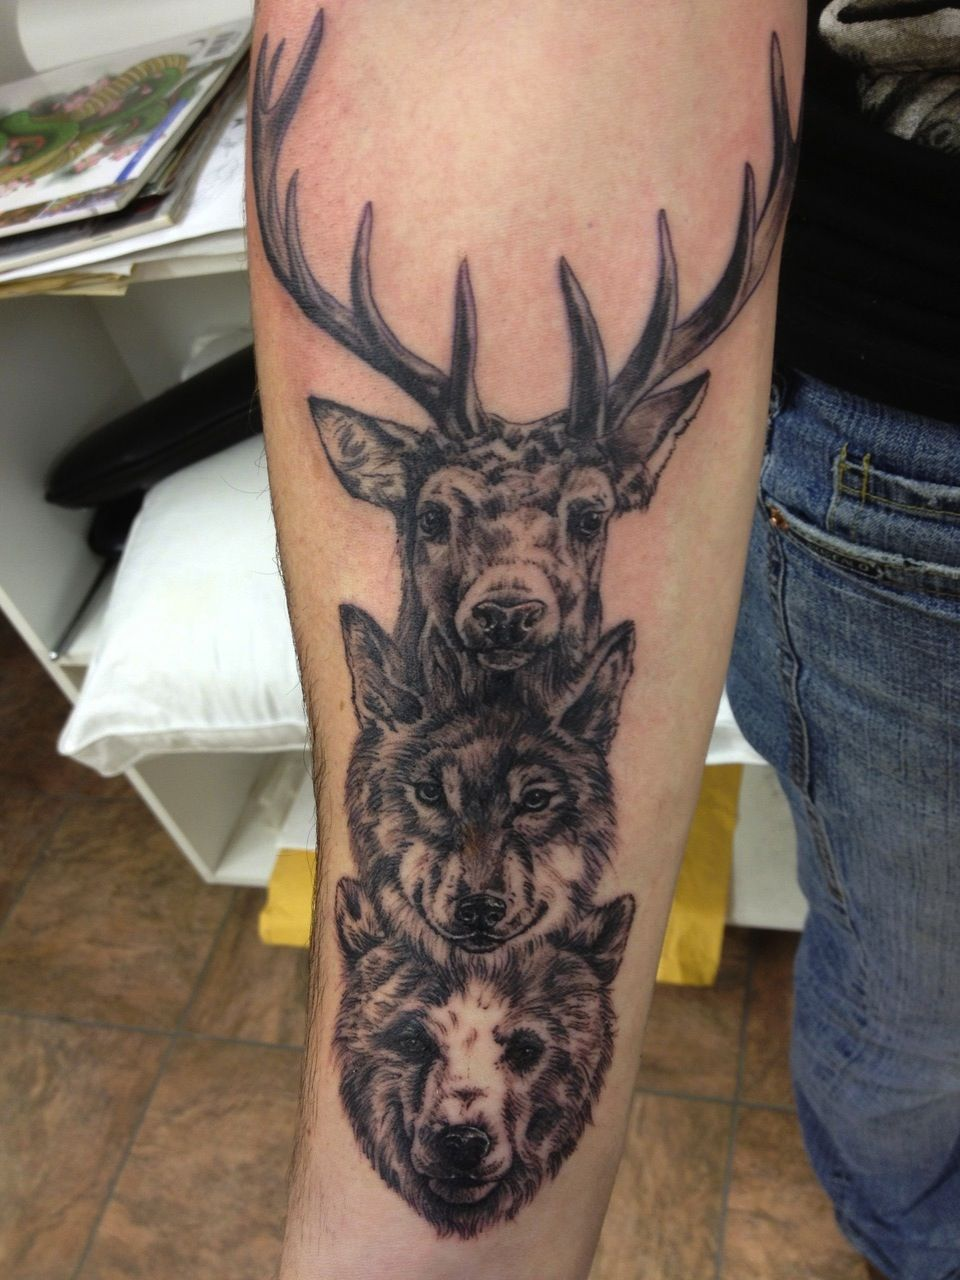 Bear Wolf And Deer Totem Pole Blackwork Tattoo Love This So Much